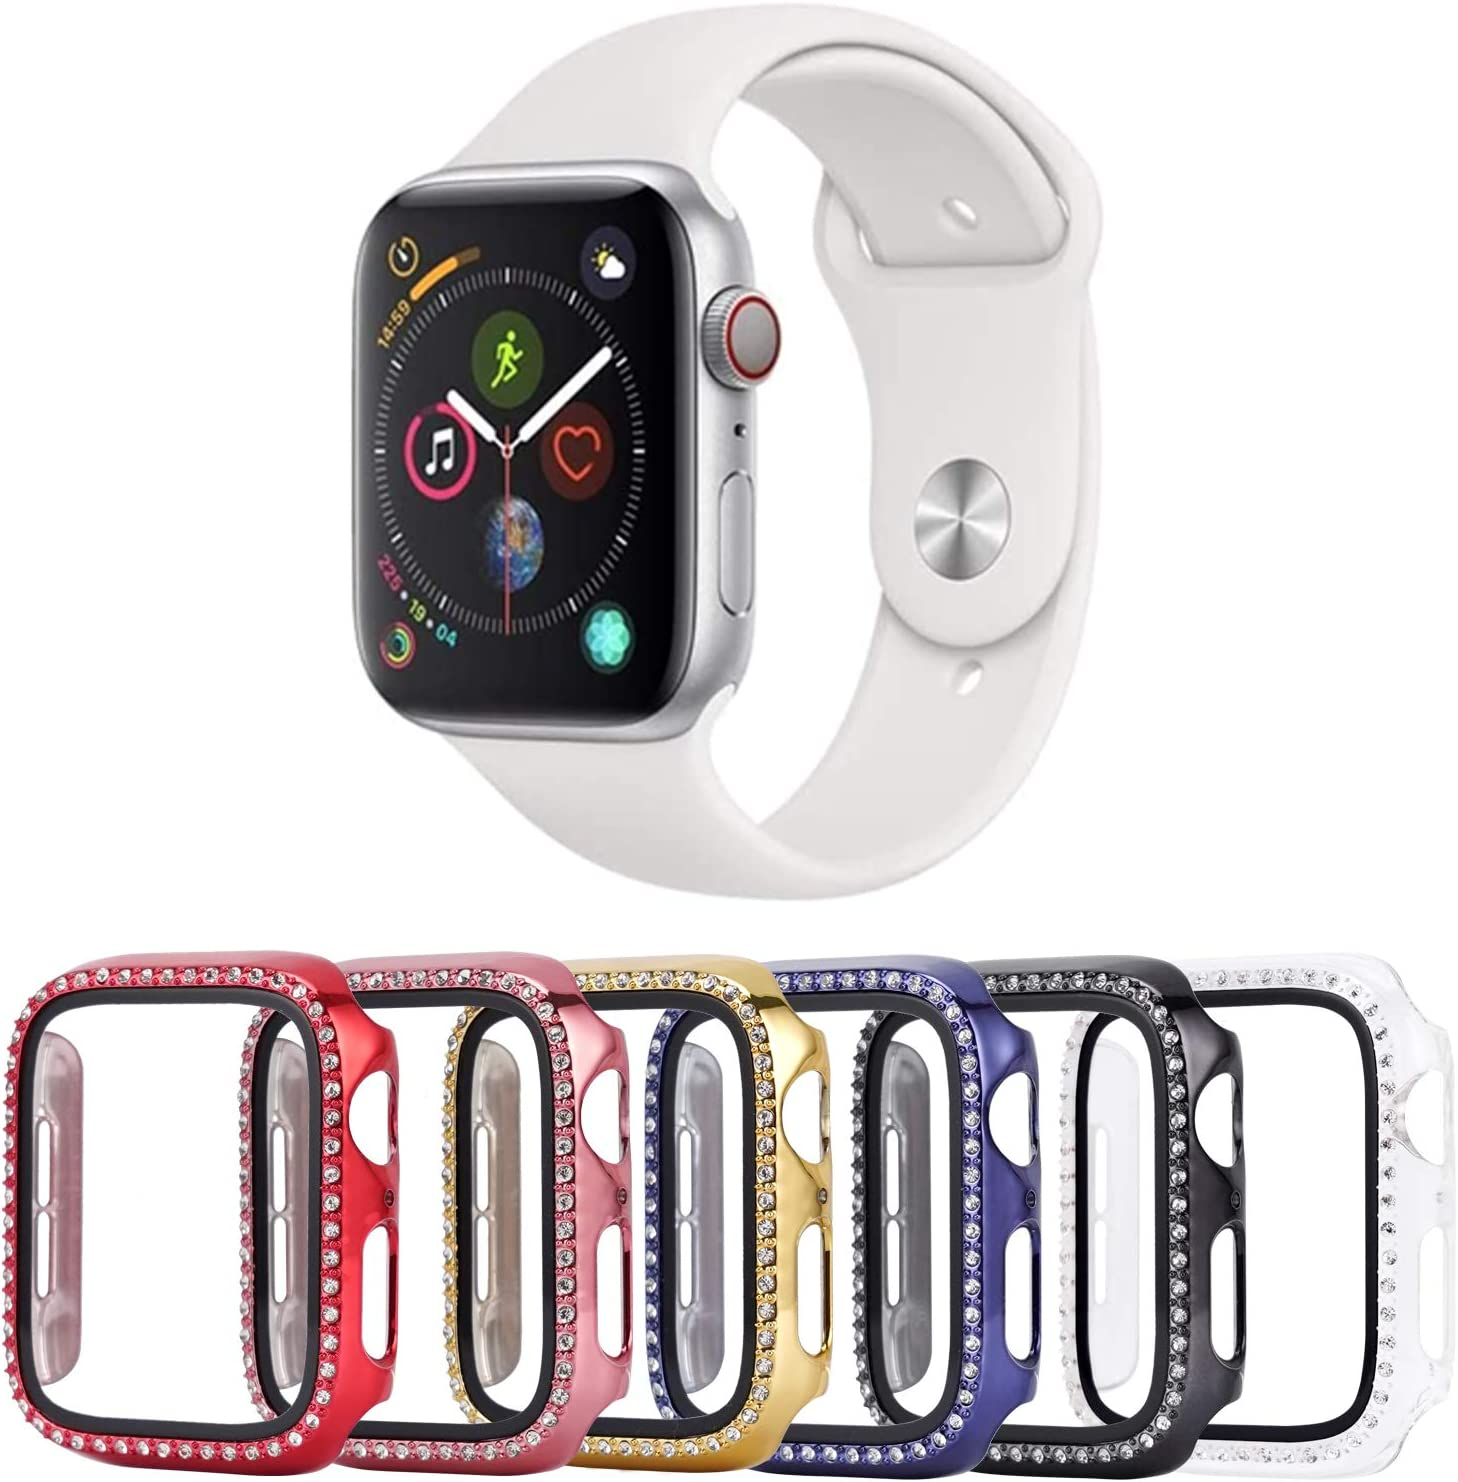 Tranesca 6 Pack 42mm Bling Case with Built-in Tempered Glass Screen Protector Compatible with Apple Watch Series 3/2/1 (Red,Rose Gold,Gold,Blue,Black,Clear)